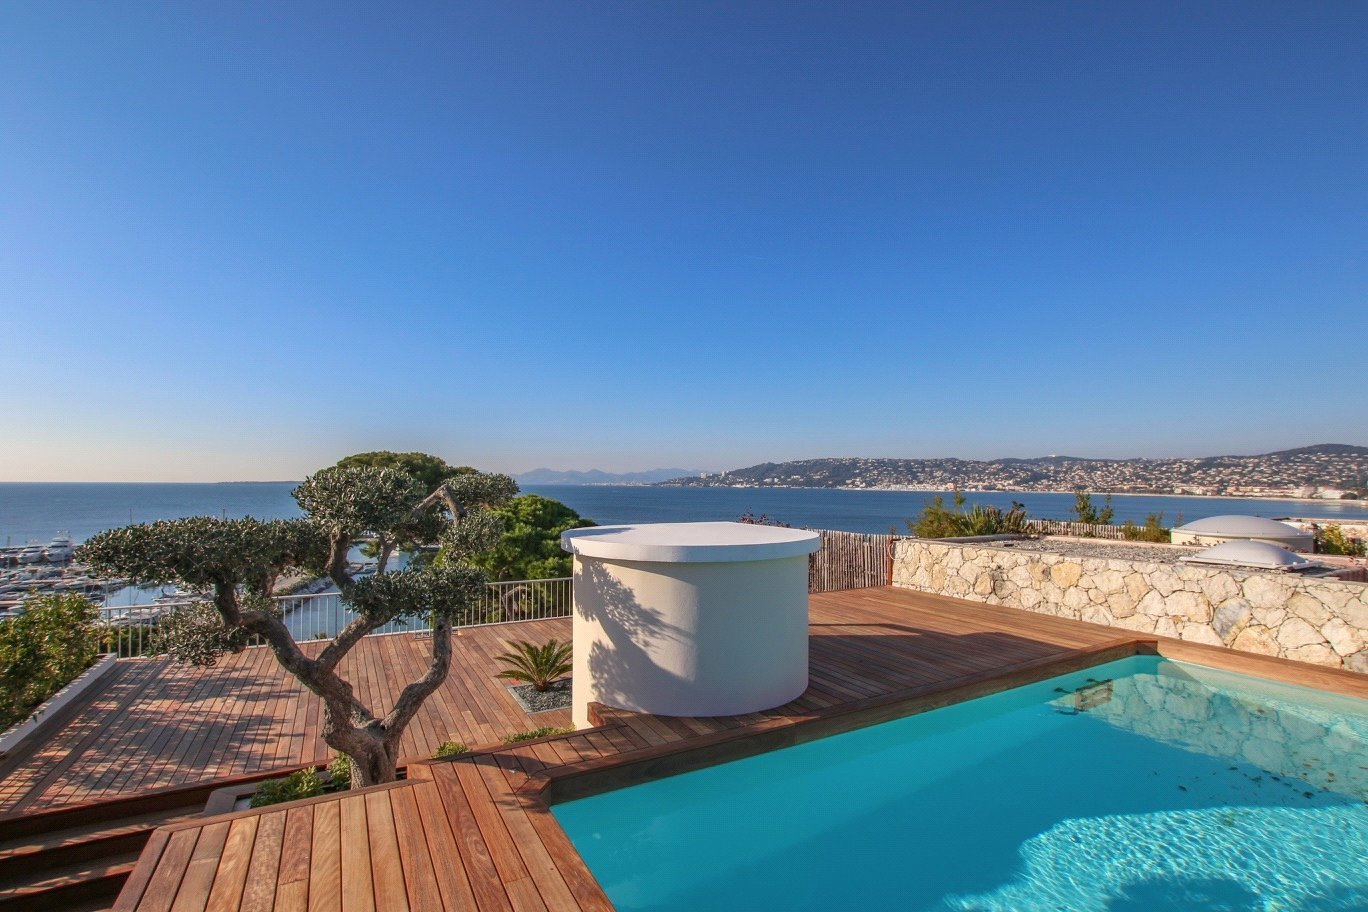 Buying Villa Cap d'Antibes Two bedroom penthouse with rooftop terrace, boasting panoramic sea views. Private swimming pool, cellar and garage.